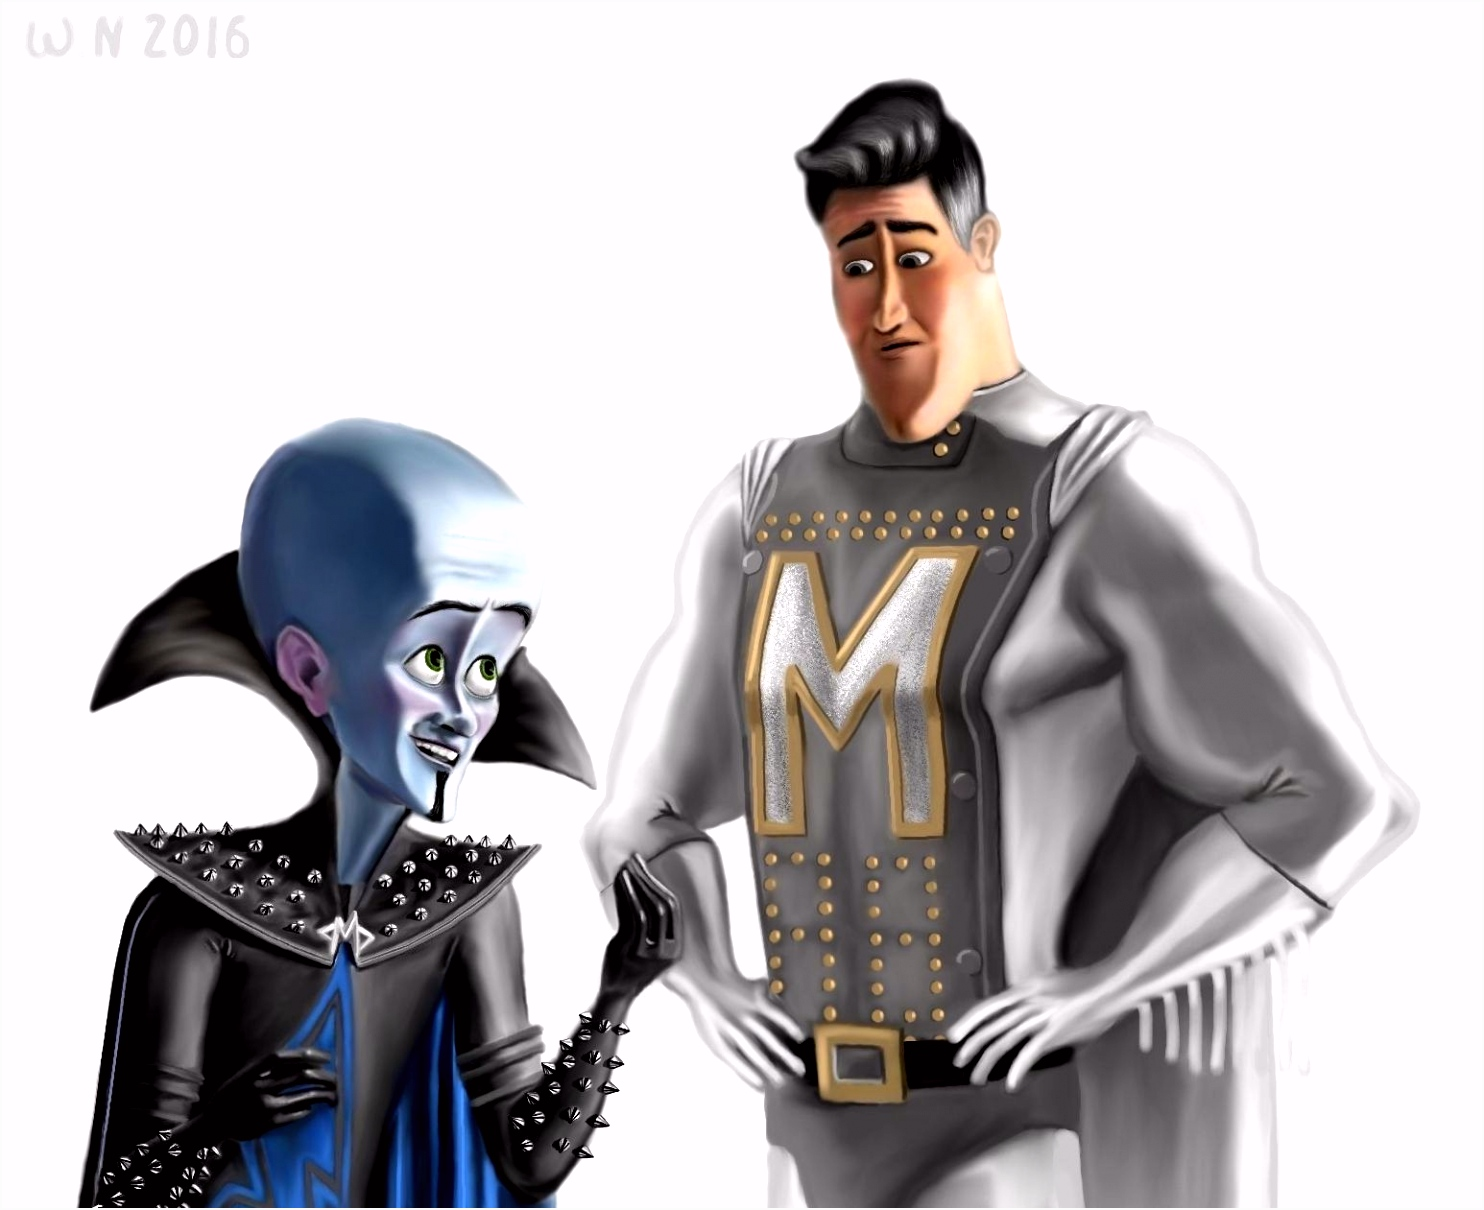 Megamind and Metroman by White Night 56 on DeviantArt